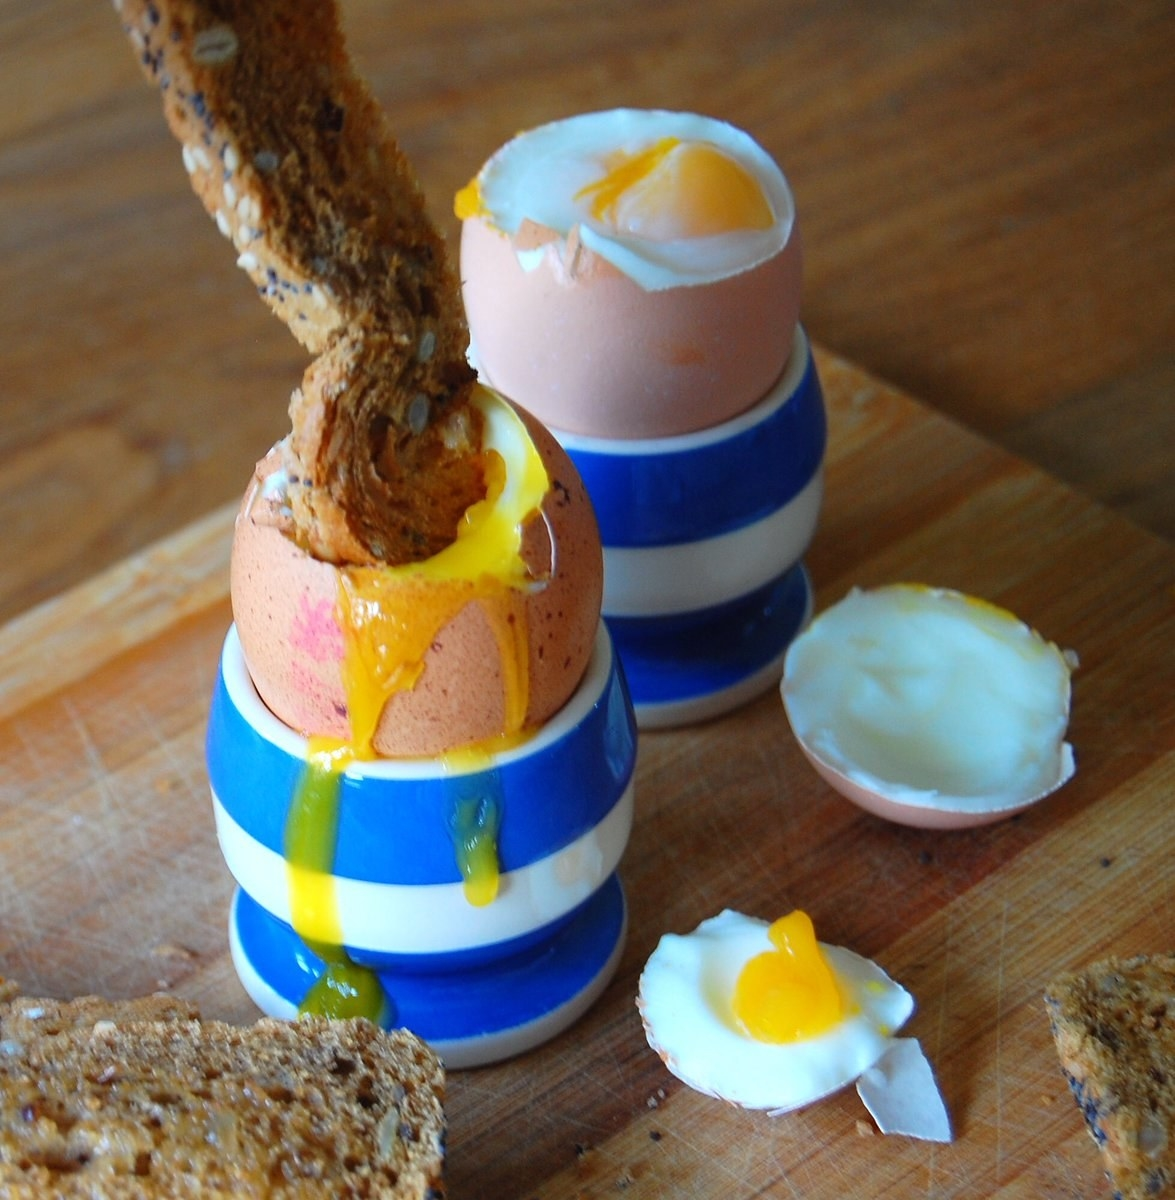 14 People Who Know How To Eat Eggs The Right Way And 1 Person Who Doesn't